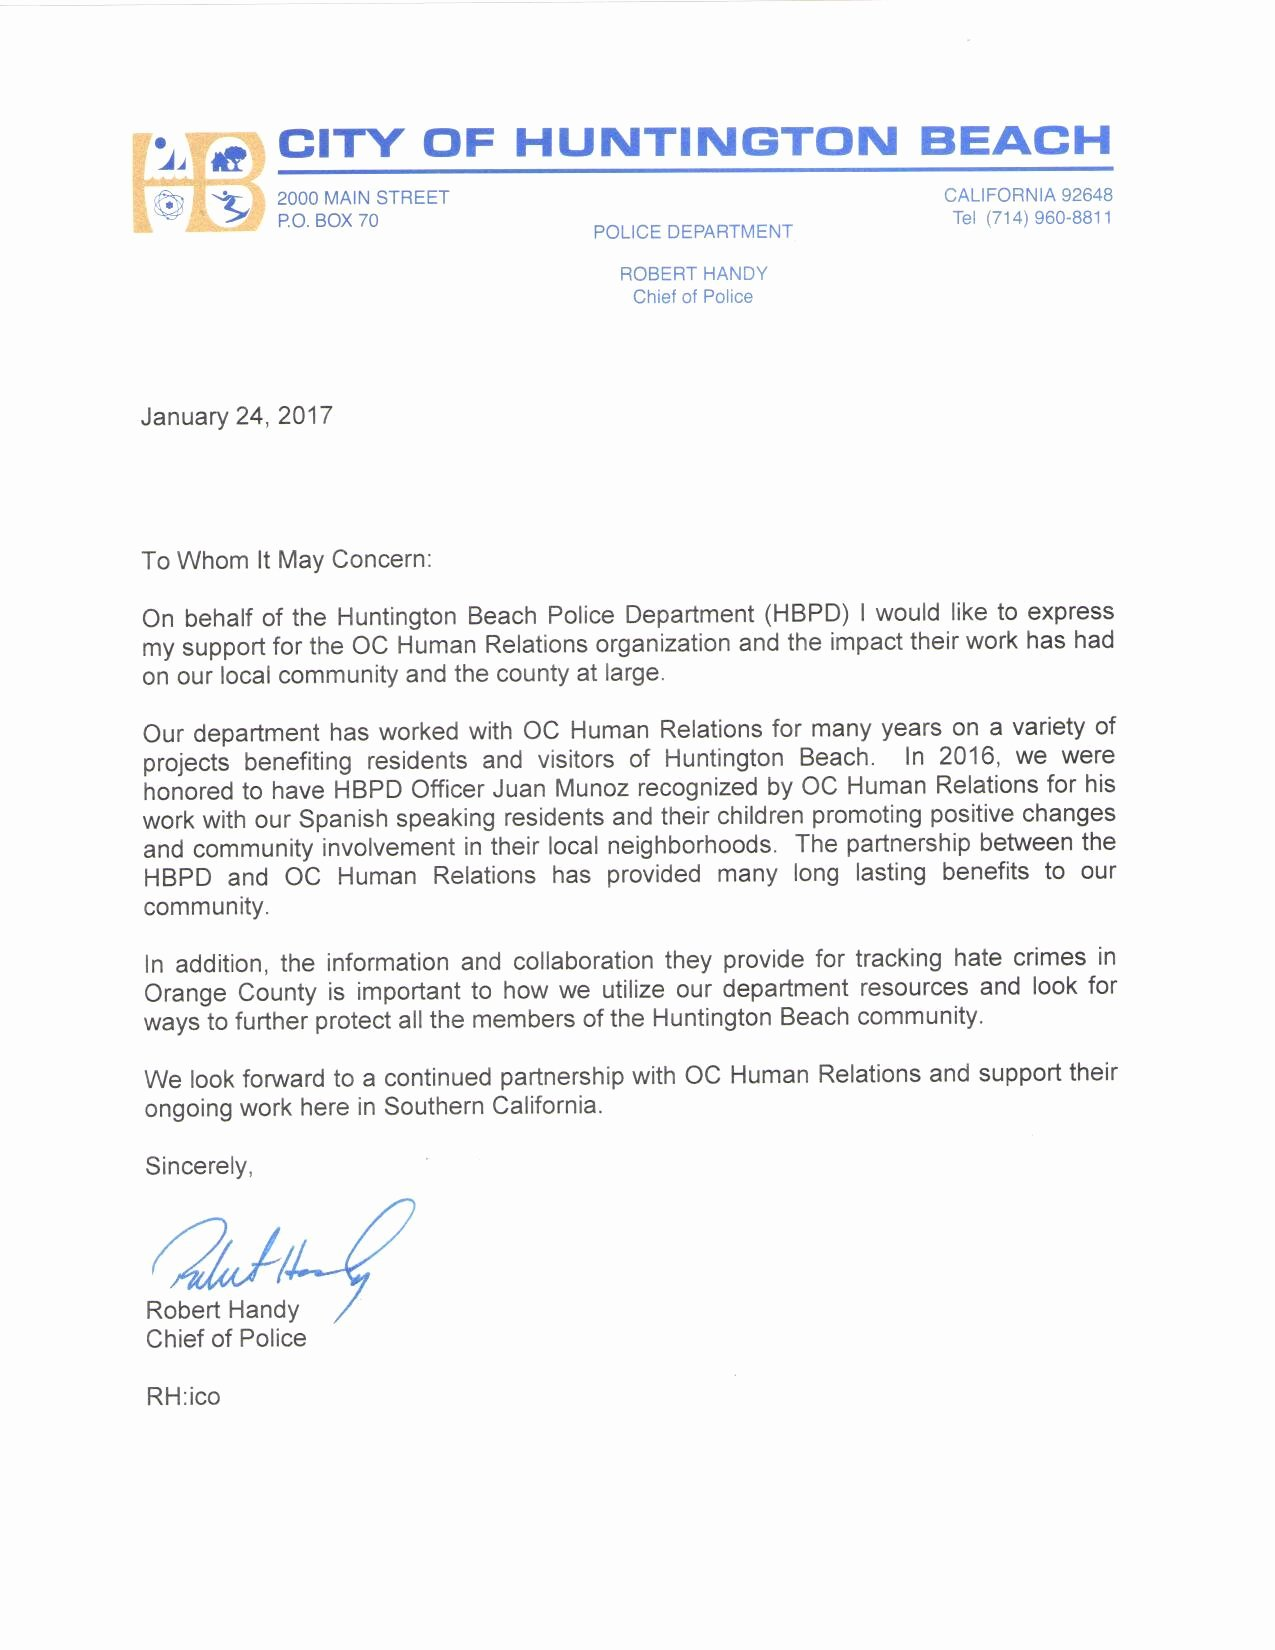 Letters Of Support Templates Fresh Oc Human Relations Support Letter Hbpd